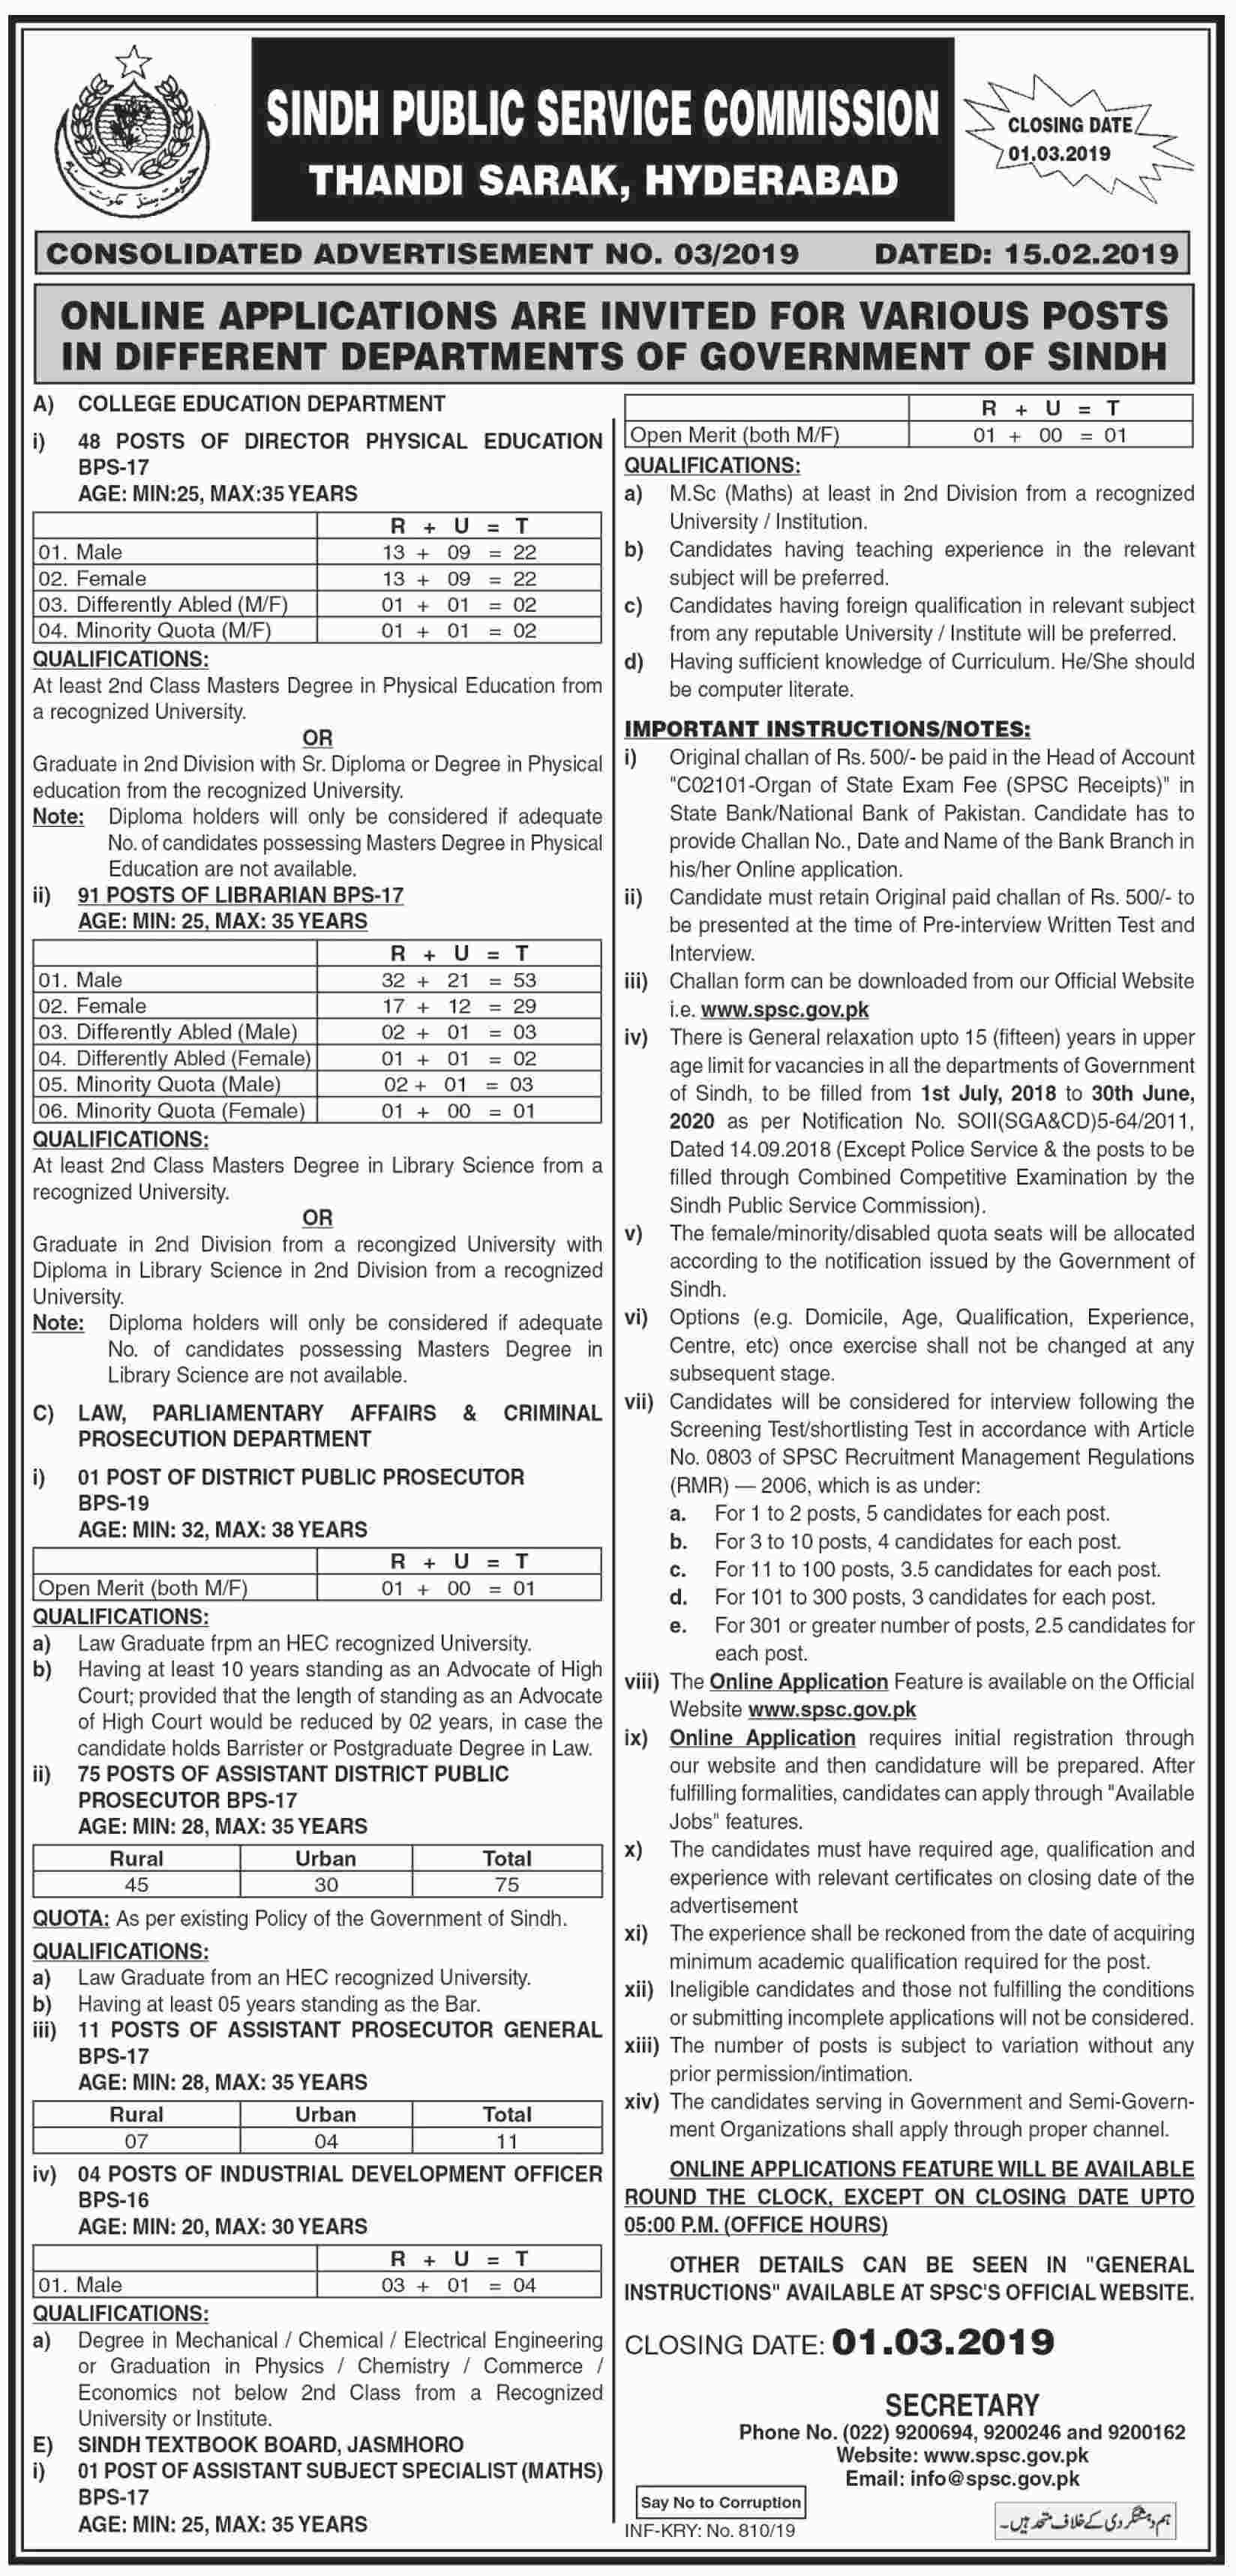 SPSC Jobs 2019 Advertisement Latest | www.spsc.gov.pk